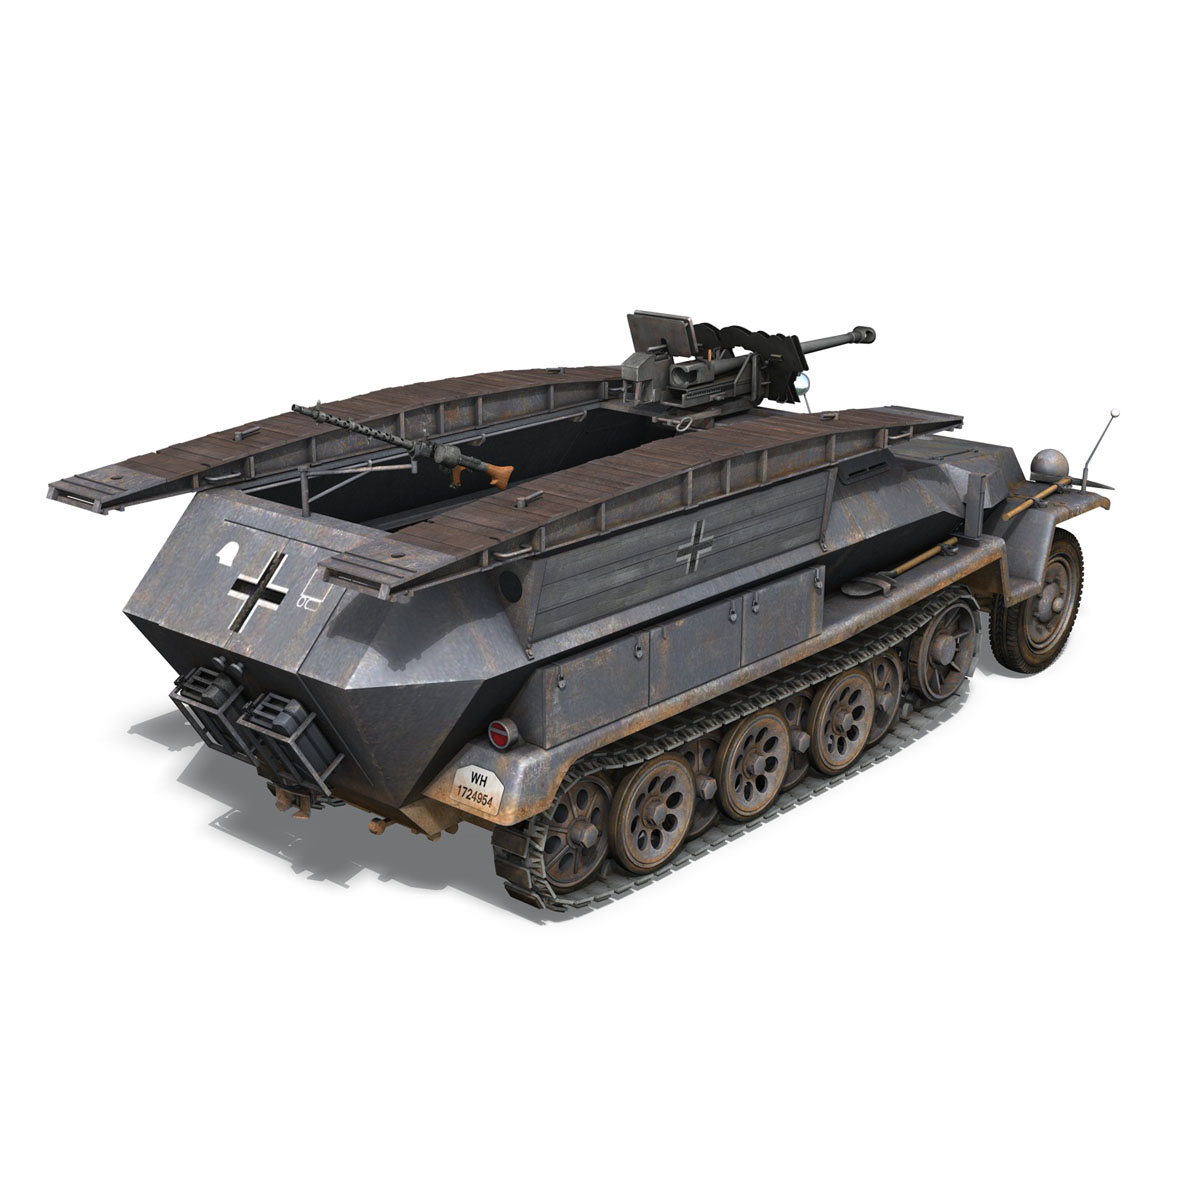 sd.kfz 251/7 ausf.c – pioneer assault bridge 3d model 3ds fbx c4d lwo obj 201522